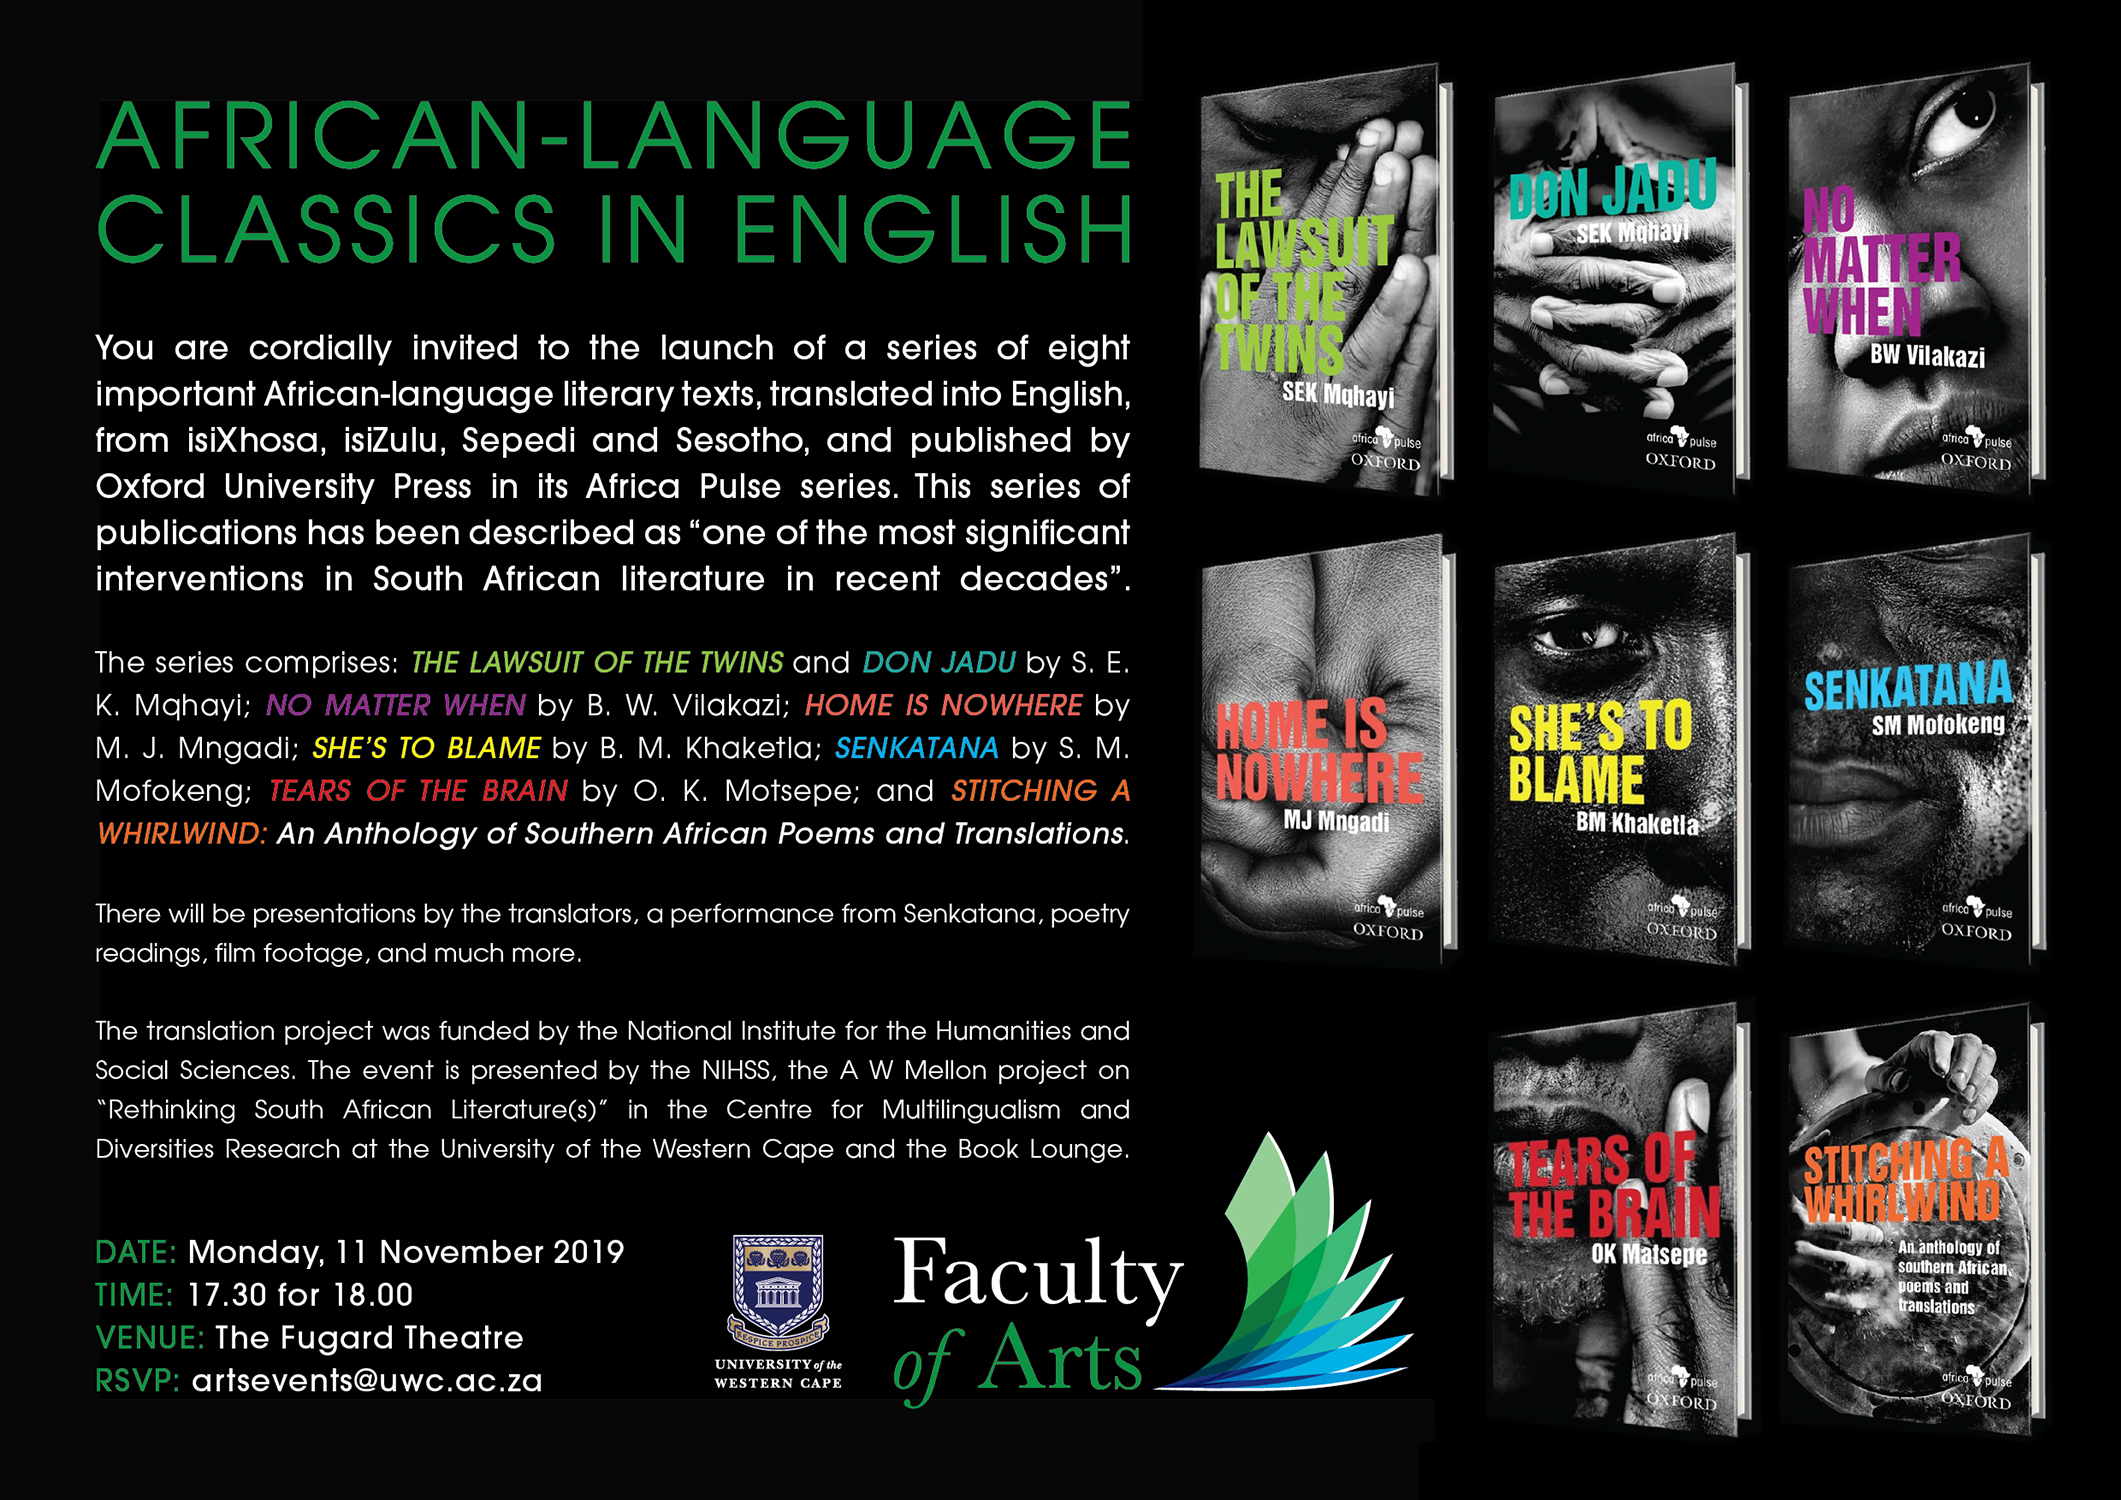 UWC African-language Classics in English (1)